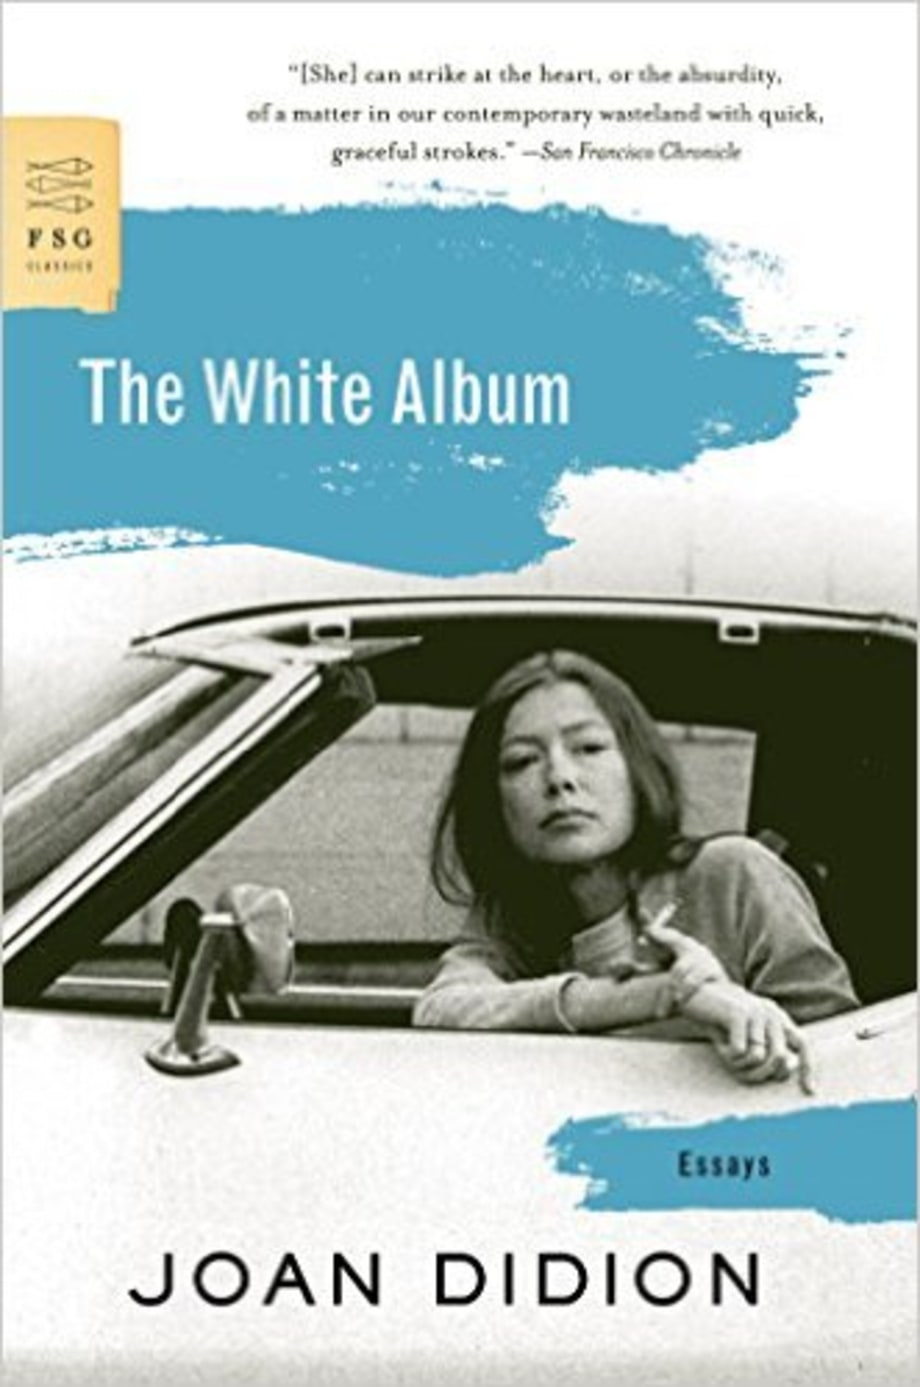 the white album by joan didion charlie on demand 10 things to the white album by joan didion